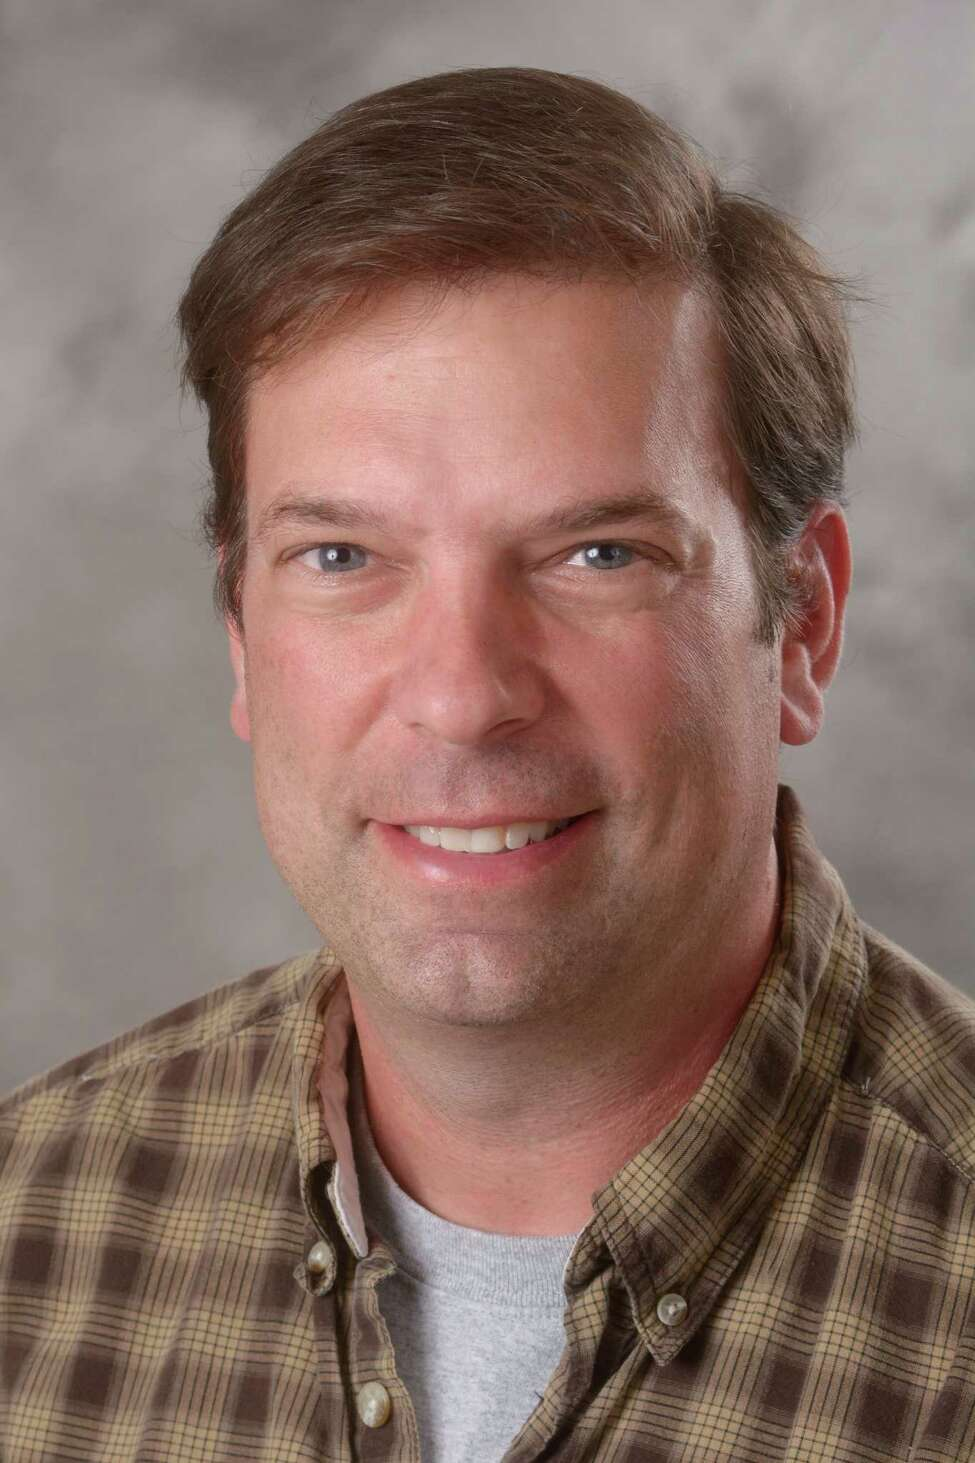 Brian Hough was an assistant professor of geology at SUNY Oswego.